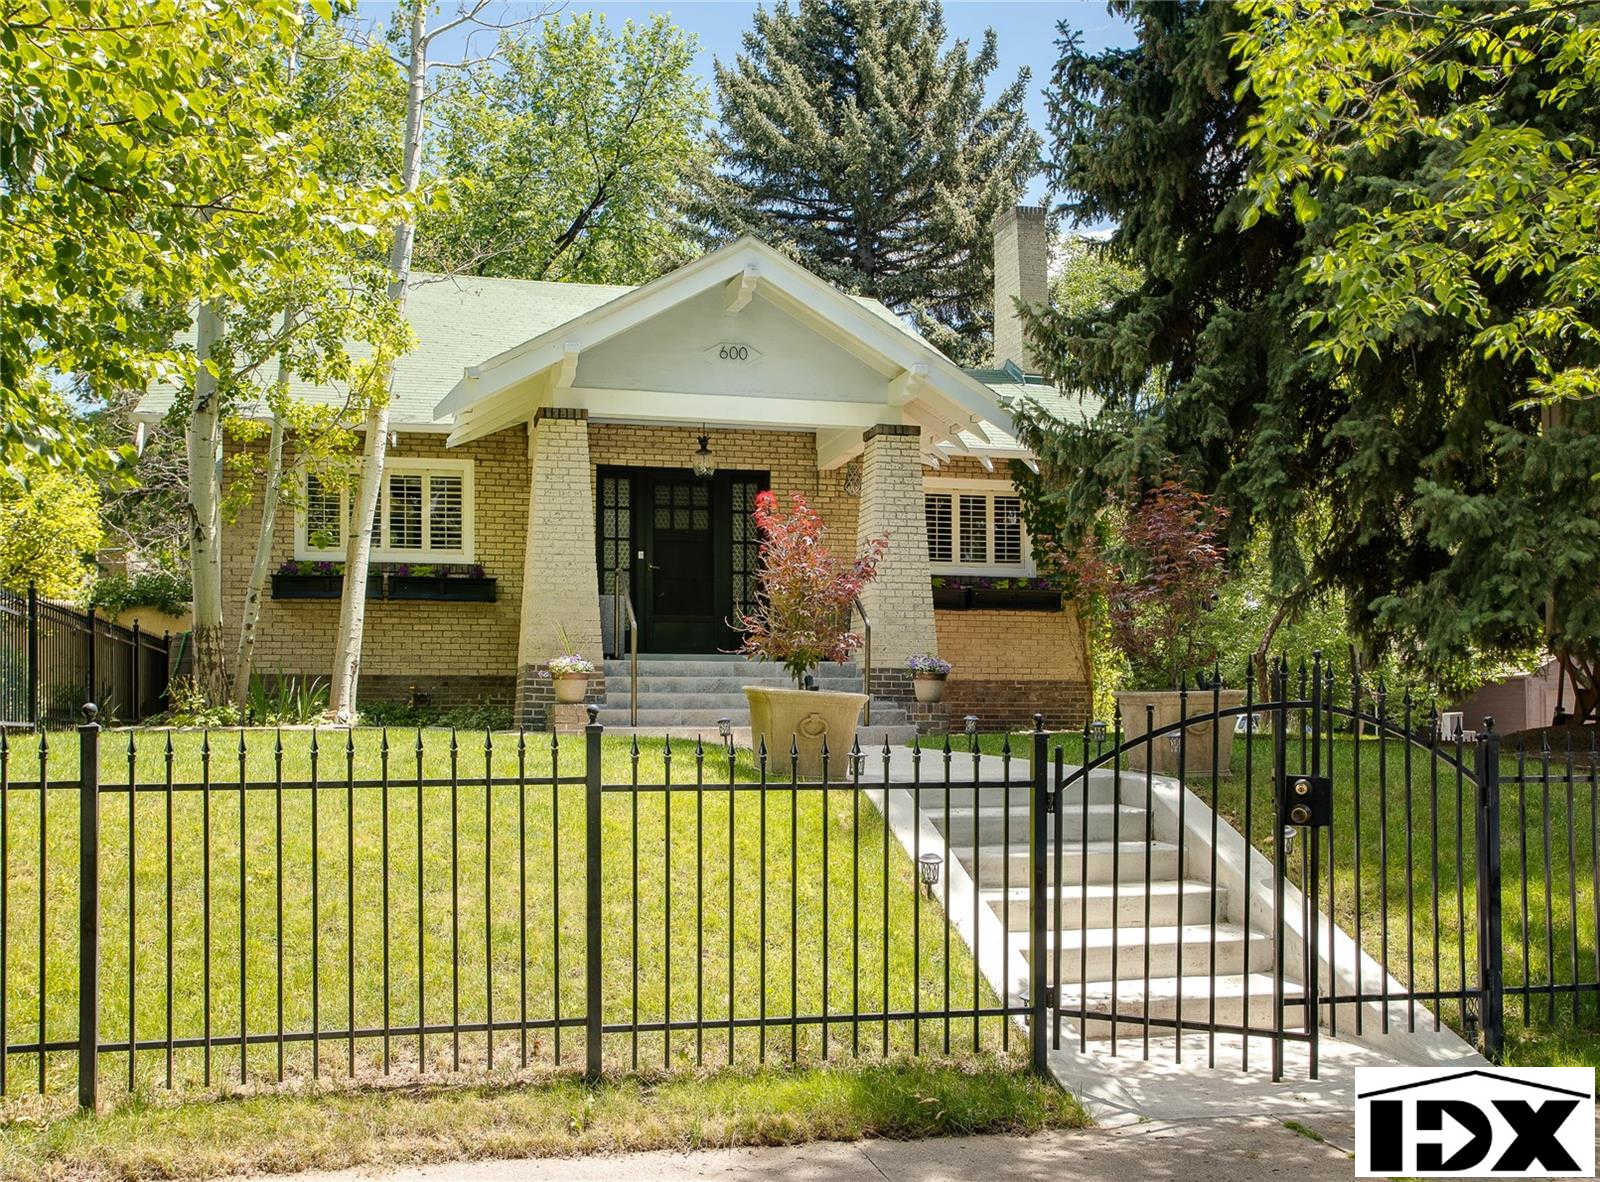 600 Saint Paul Street, Denver, CO 80206 now has a new price of $750,000!